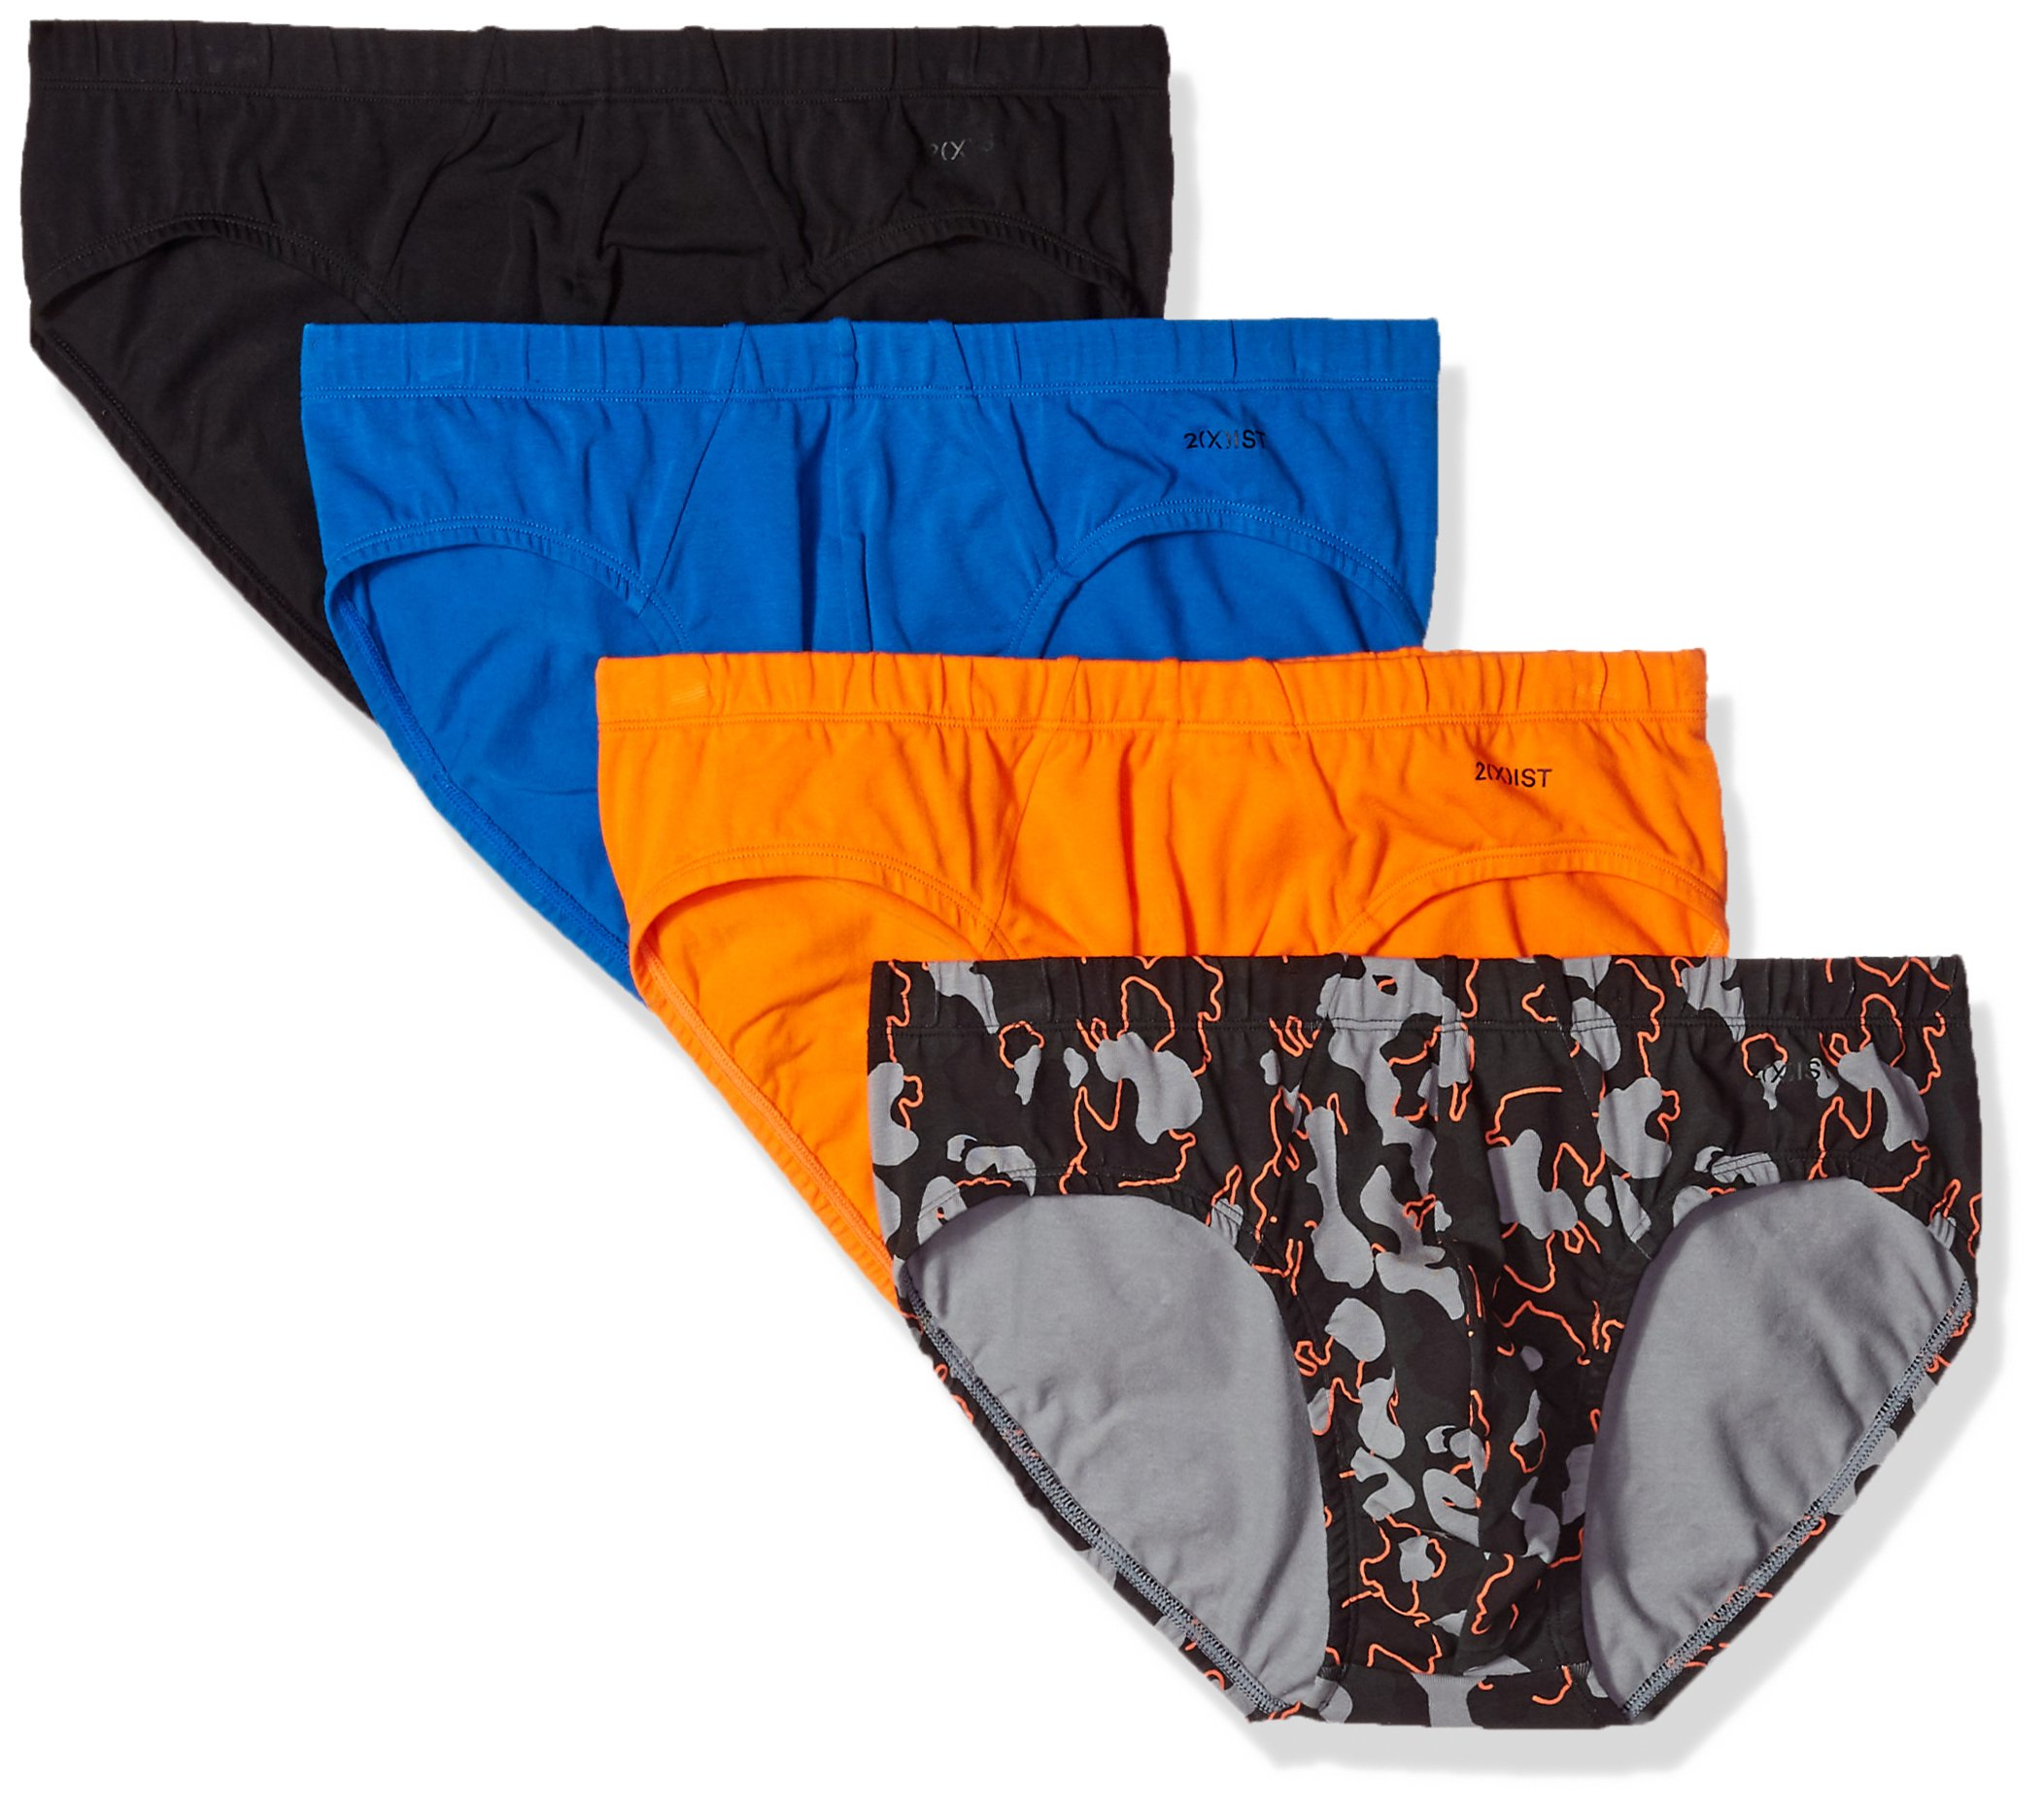 2(X)IST Men's Comfort Cotton Bikini Brief Multipack, Golden Poppy/Lapis/Pop Camo/Charcoal, X-Large